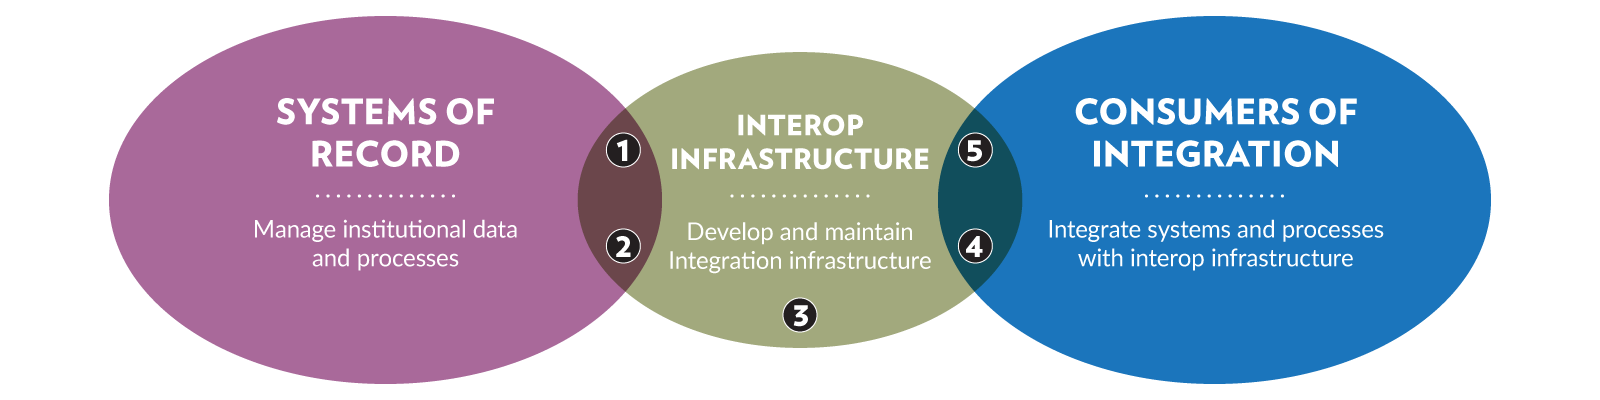 Venn diagram showing the relationship of Systems of Record to Interop Infrastructure and Consumers of Integration